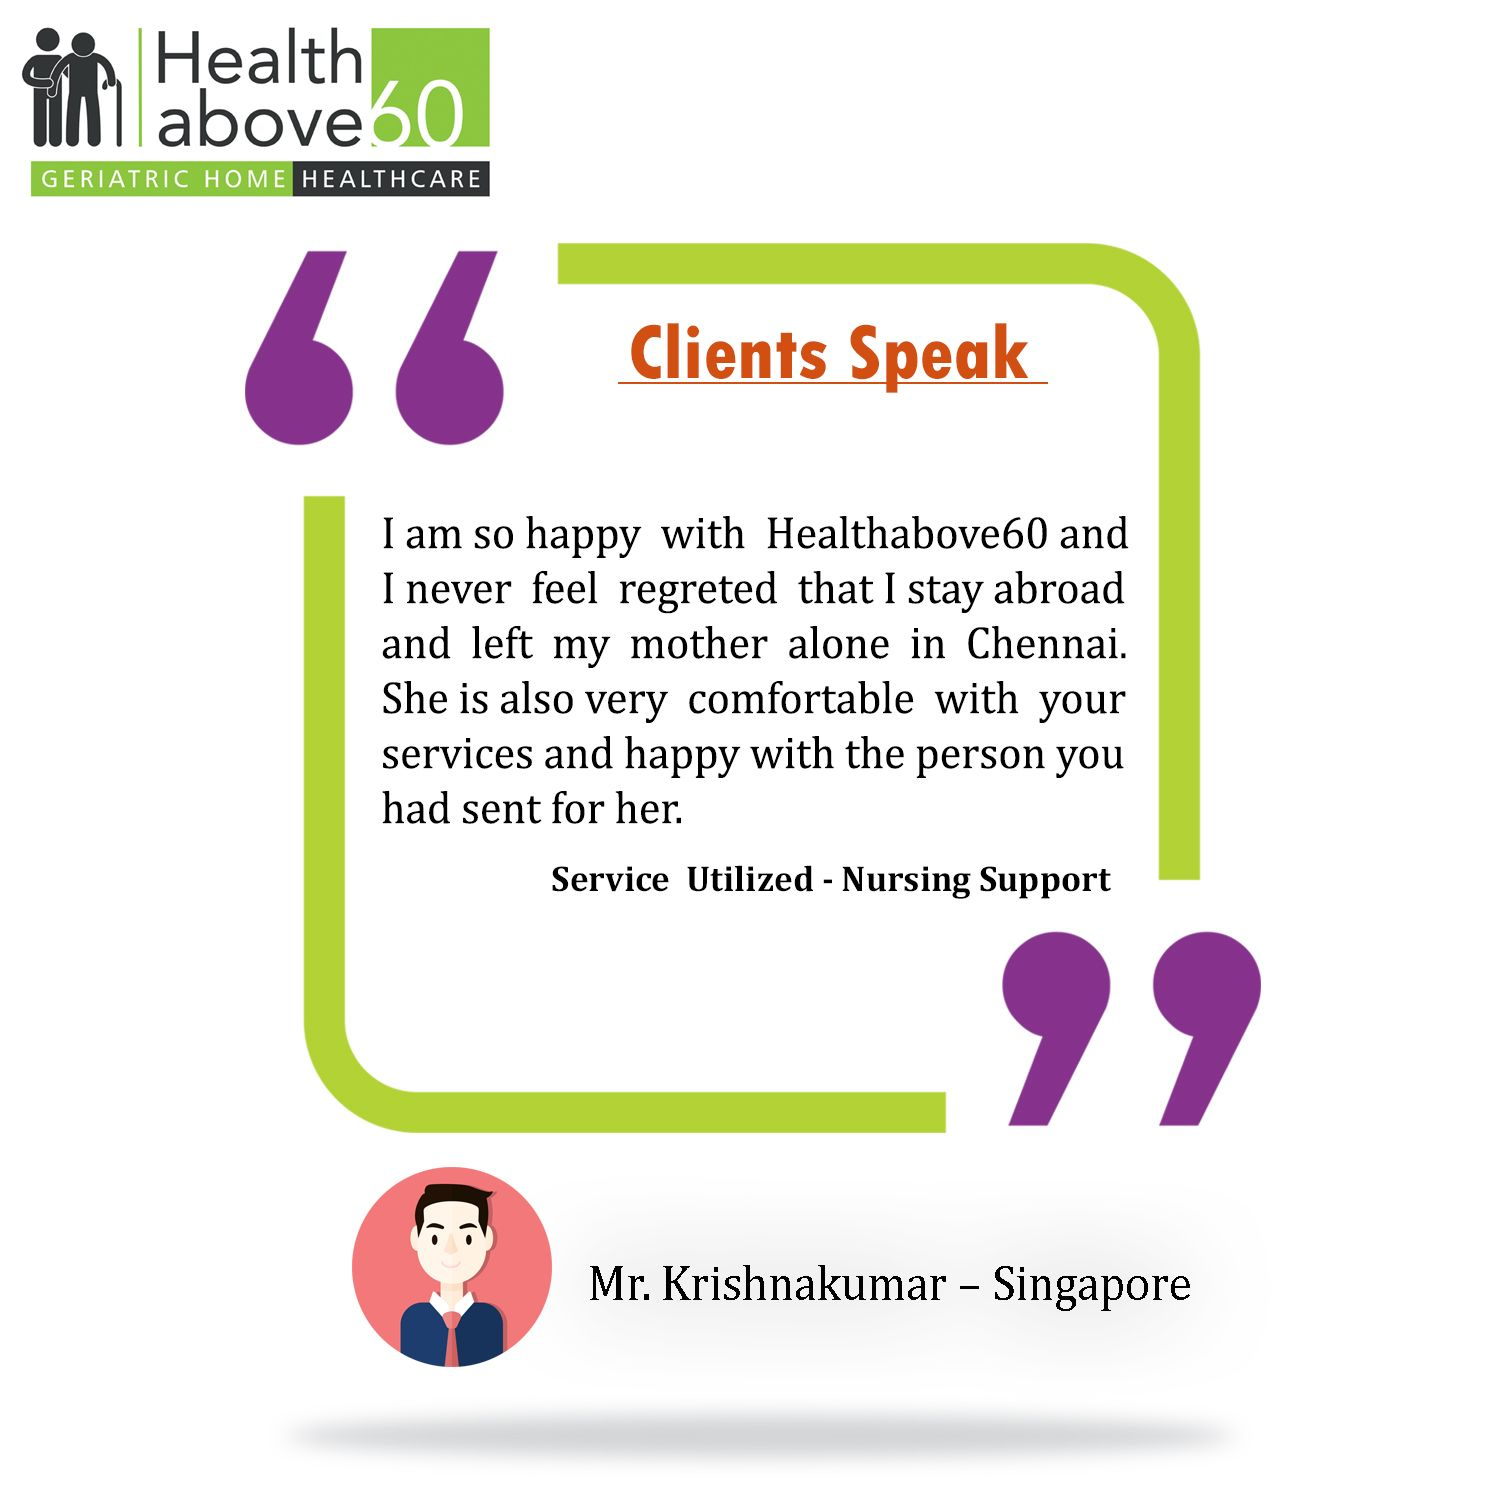 Our clients aren't just satisfied, they're delighted. #Healthabove60 #Testimonial